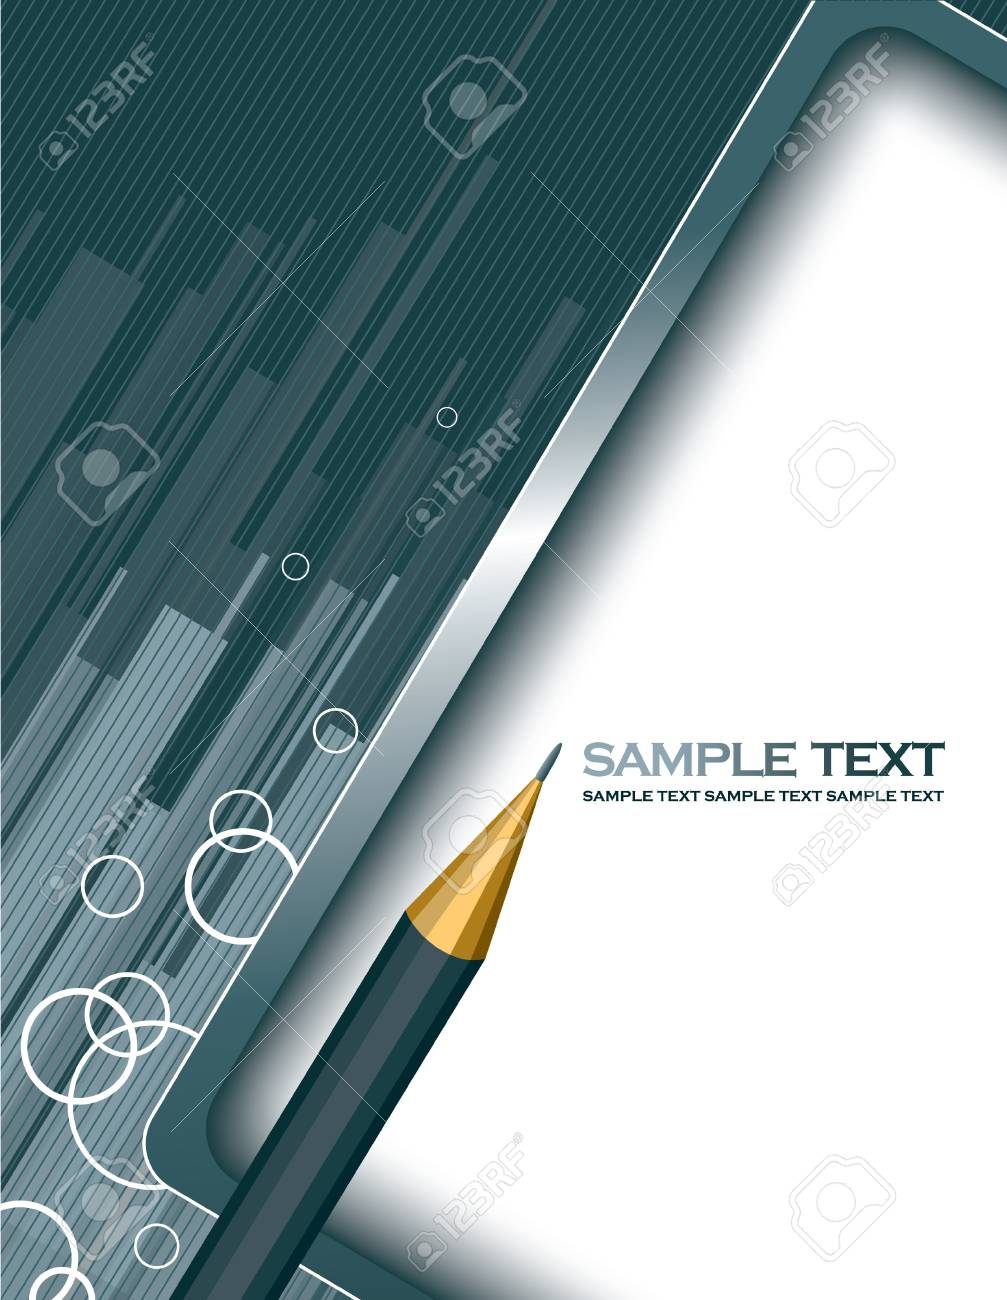 Abstract Vector Background. Eps10 Format. Stock Vector - 12301538